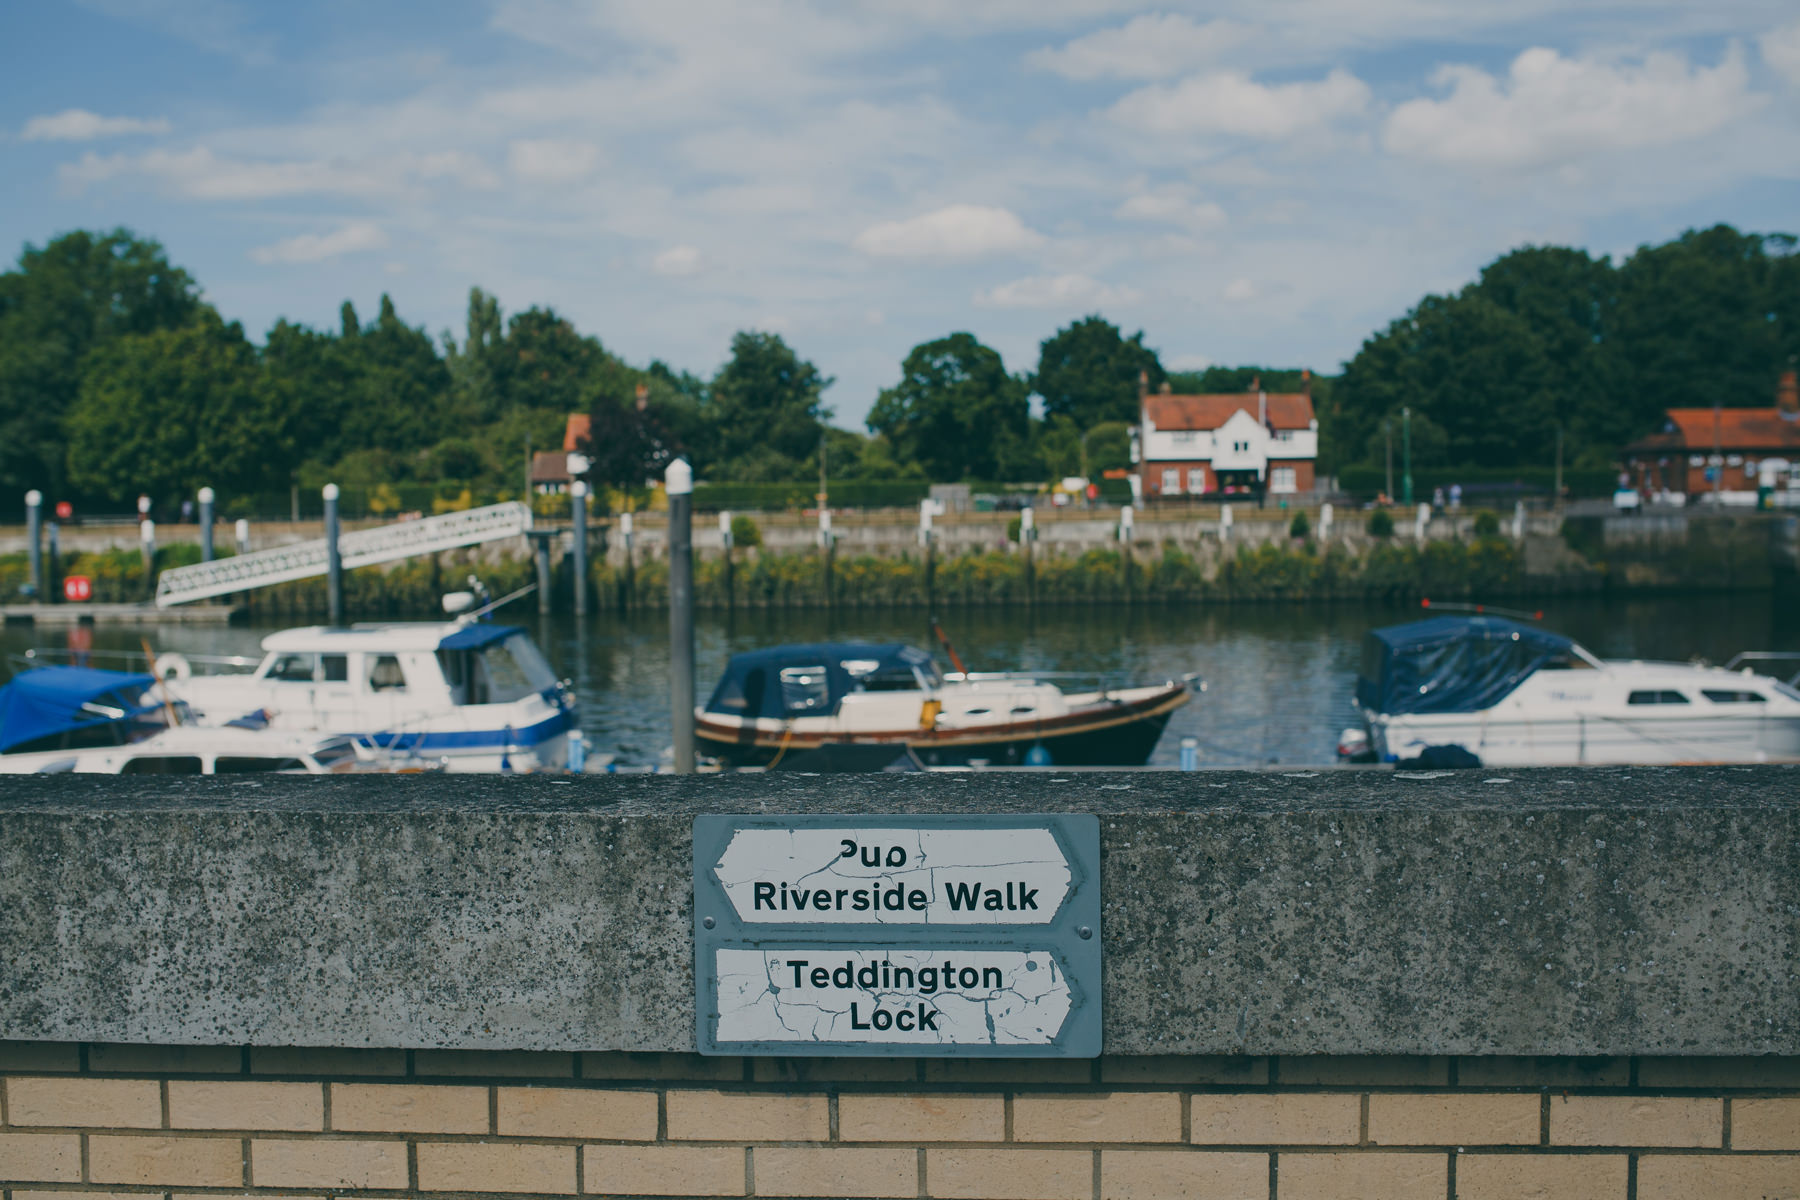 84 Teddington The Wharf riverside during summer.jpg